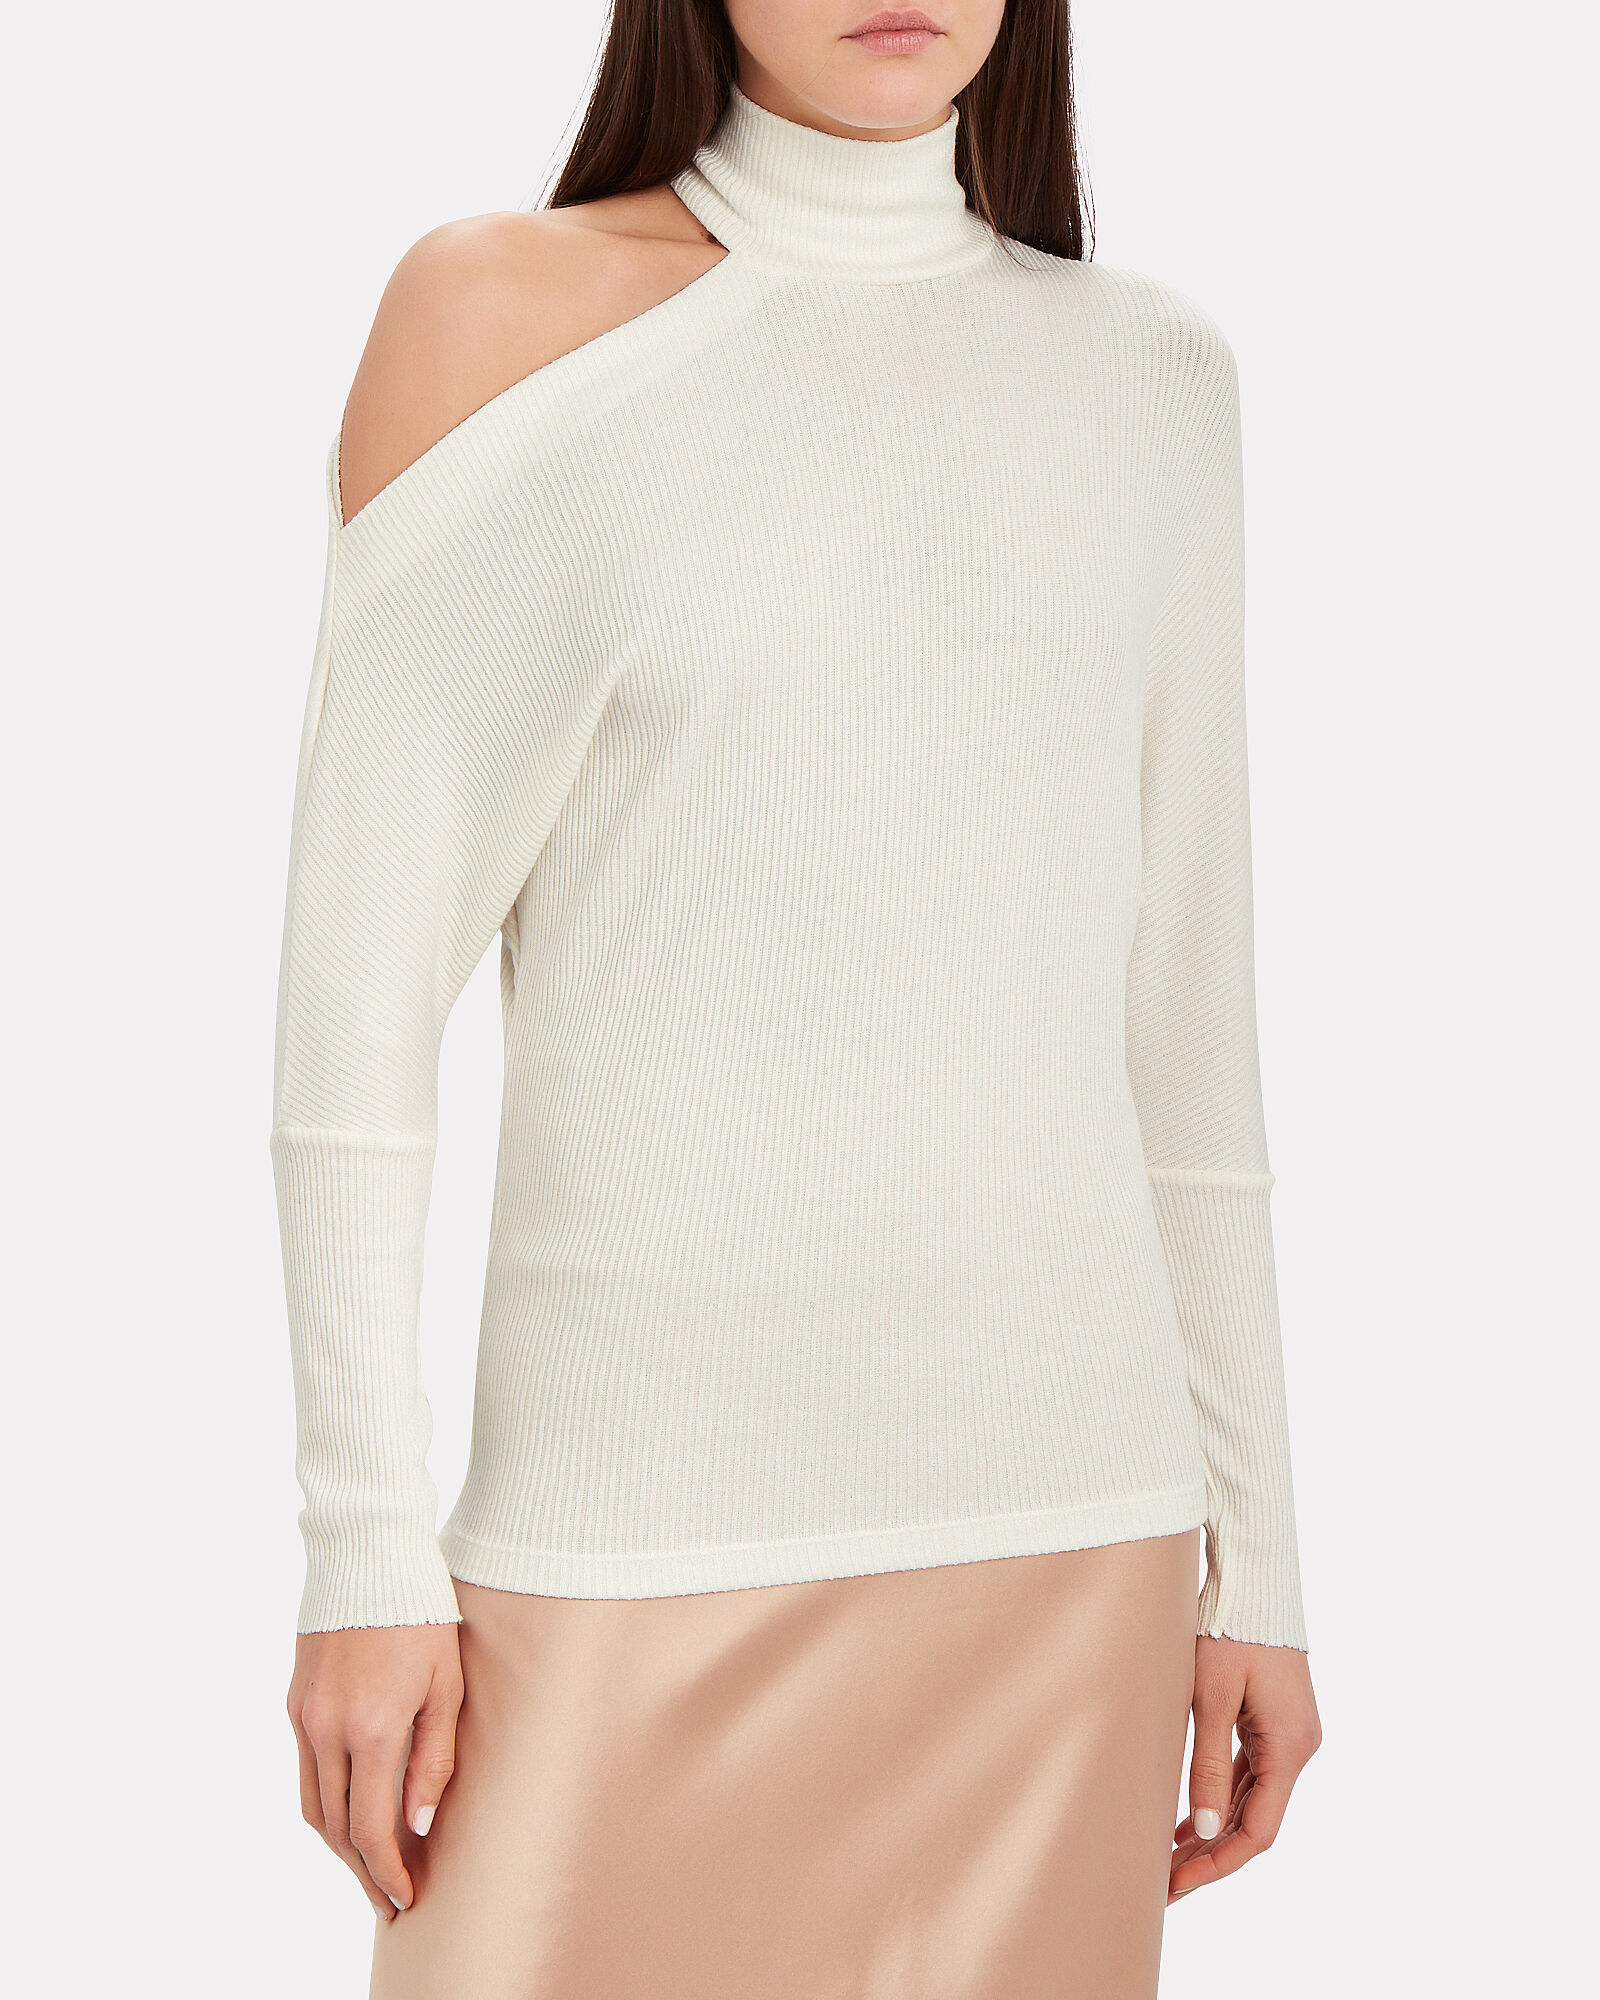 Hearther Cut-Out Ribbed Top, WHITE, hi-res